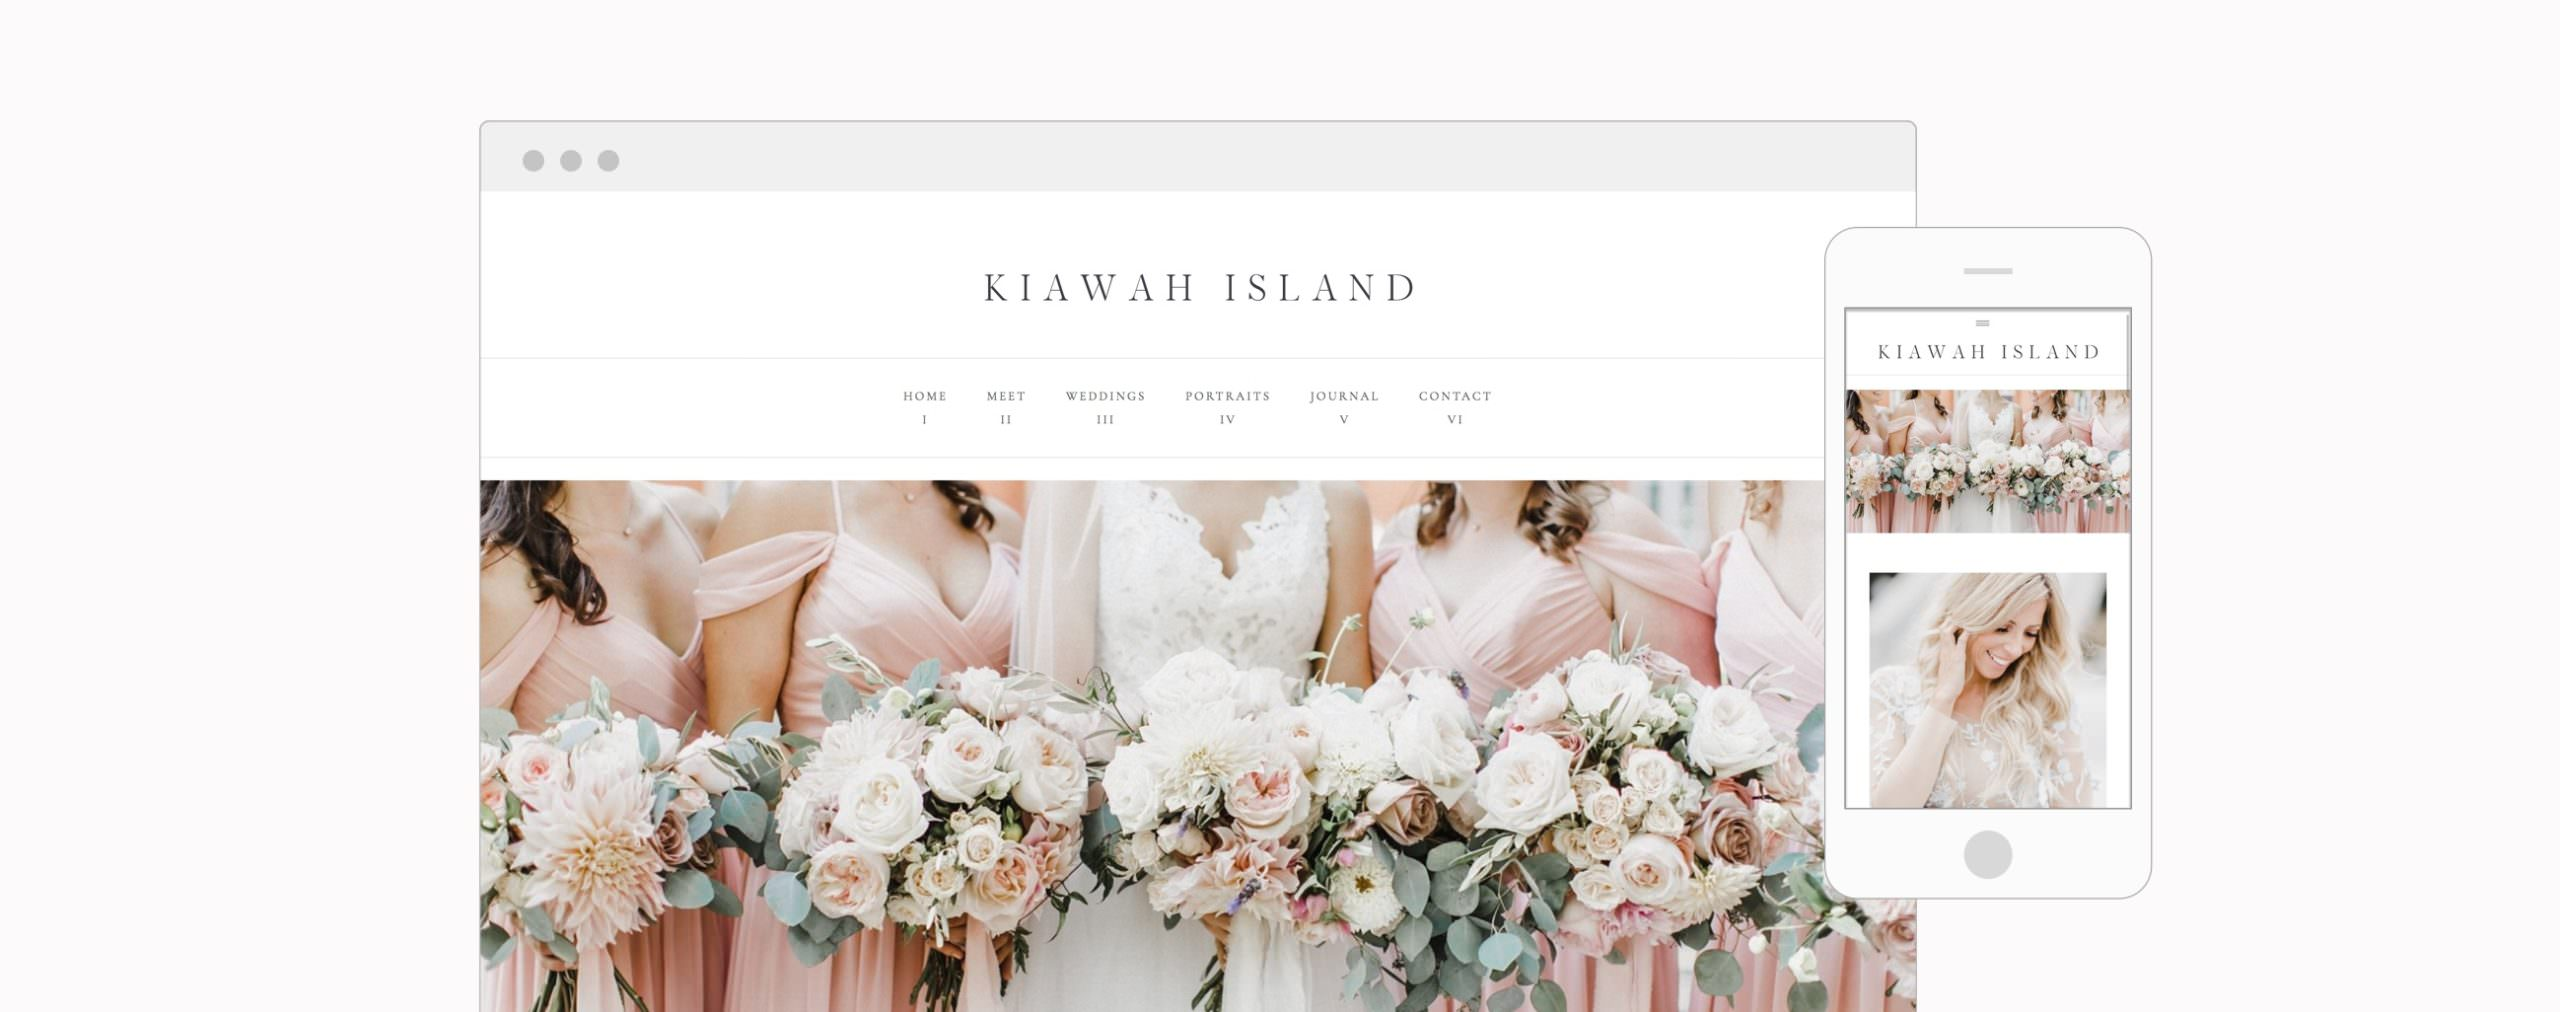 Product Header - Kiawah Island1